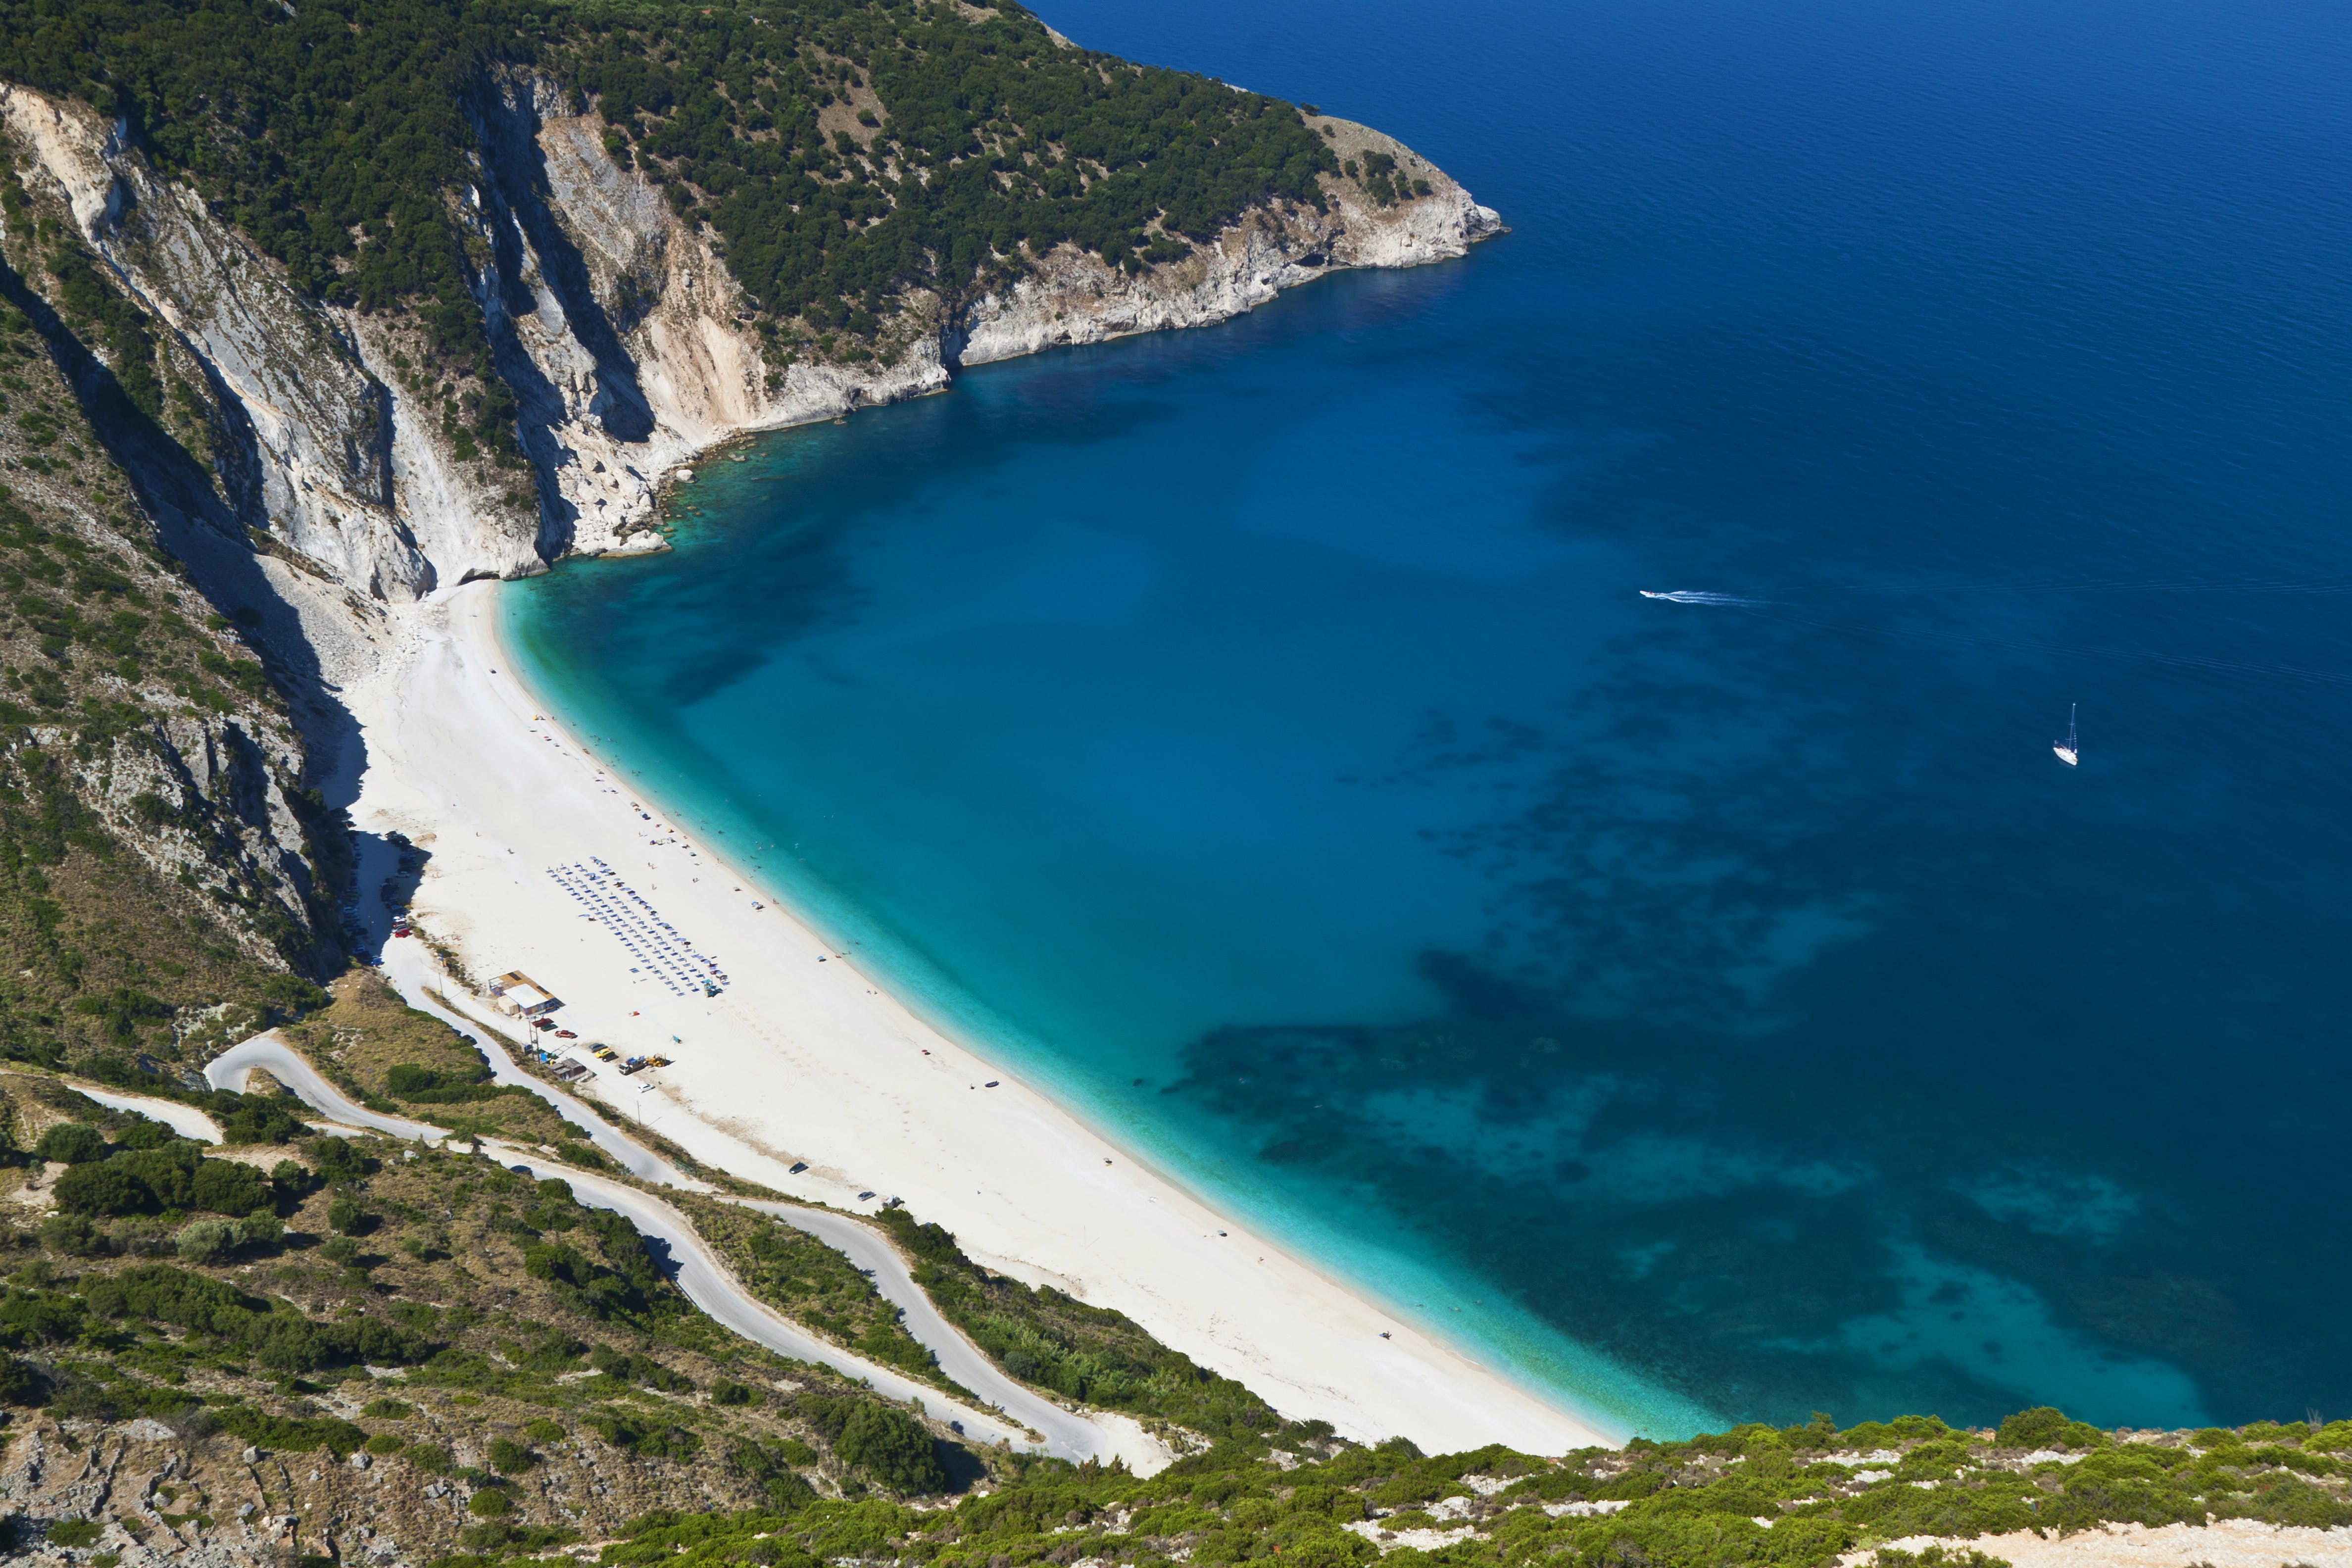 Aerial view of Myrtos Beach with white sand and light blue waters in Kefallonia, Greece